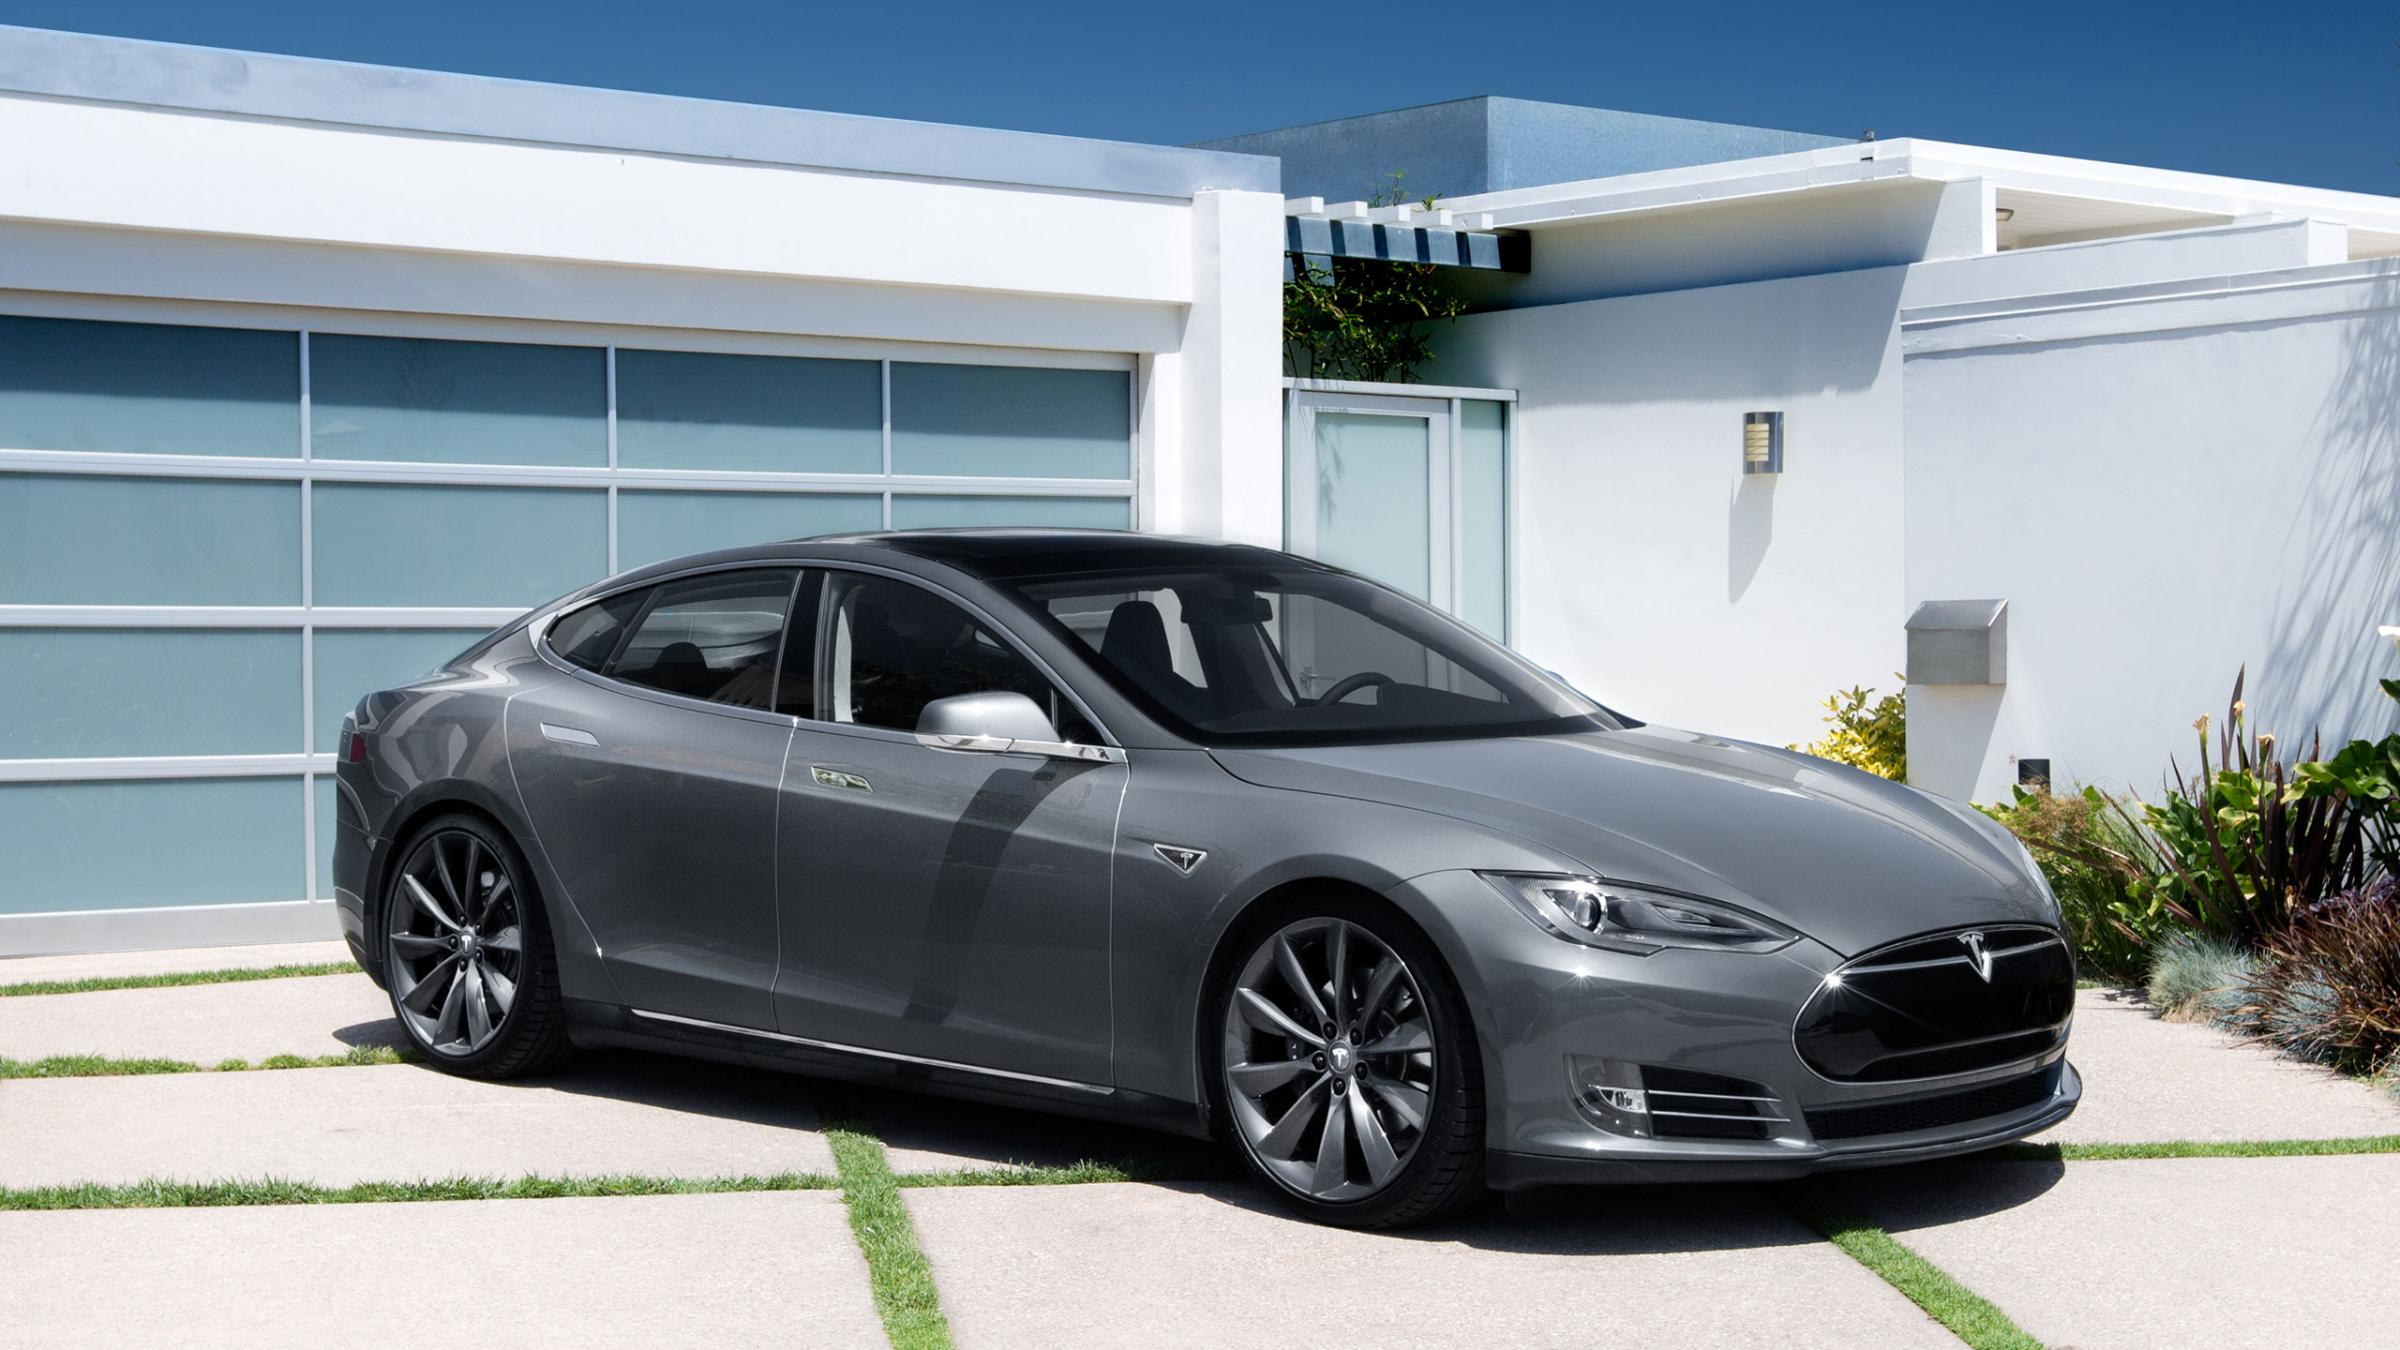 the tesla model s todd bianco 39 s acarisnotarefrigerator. Black Bedroom Furniture Sets. Home Design Ideas